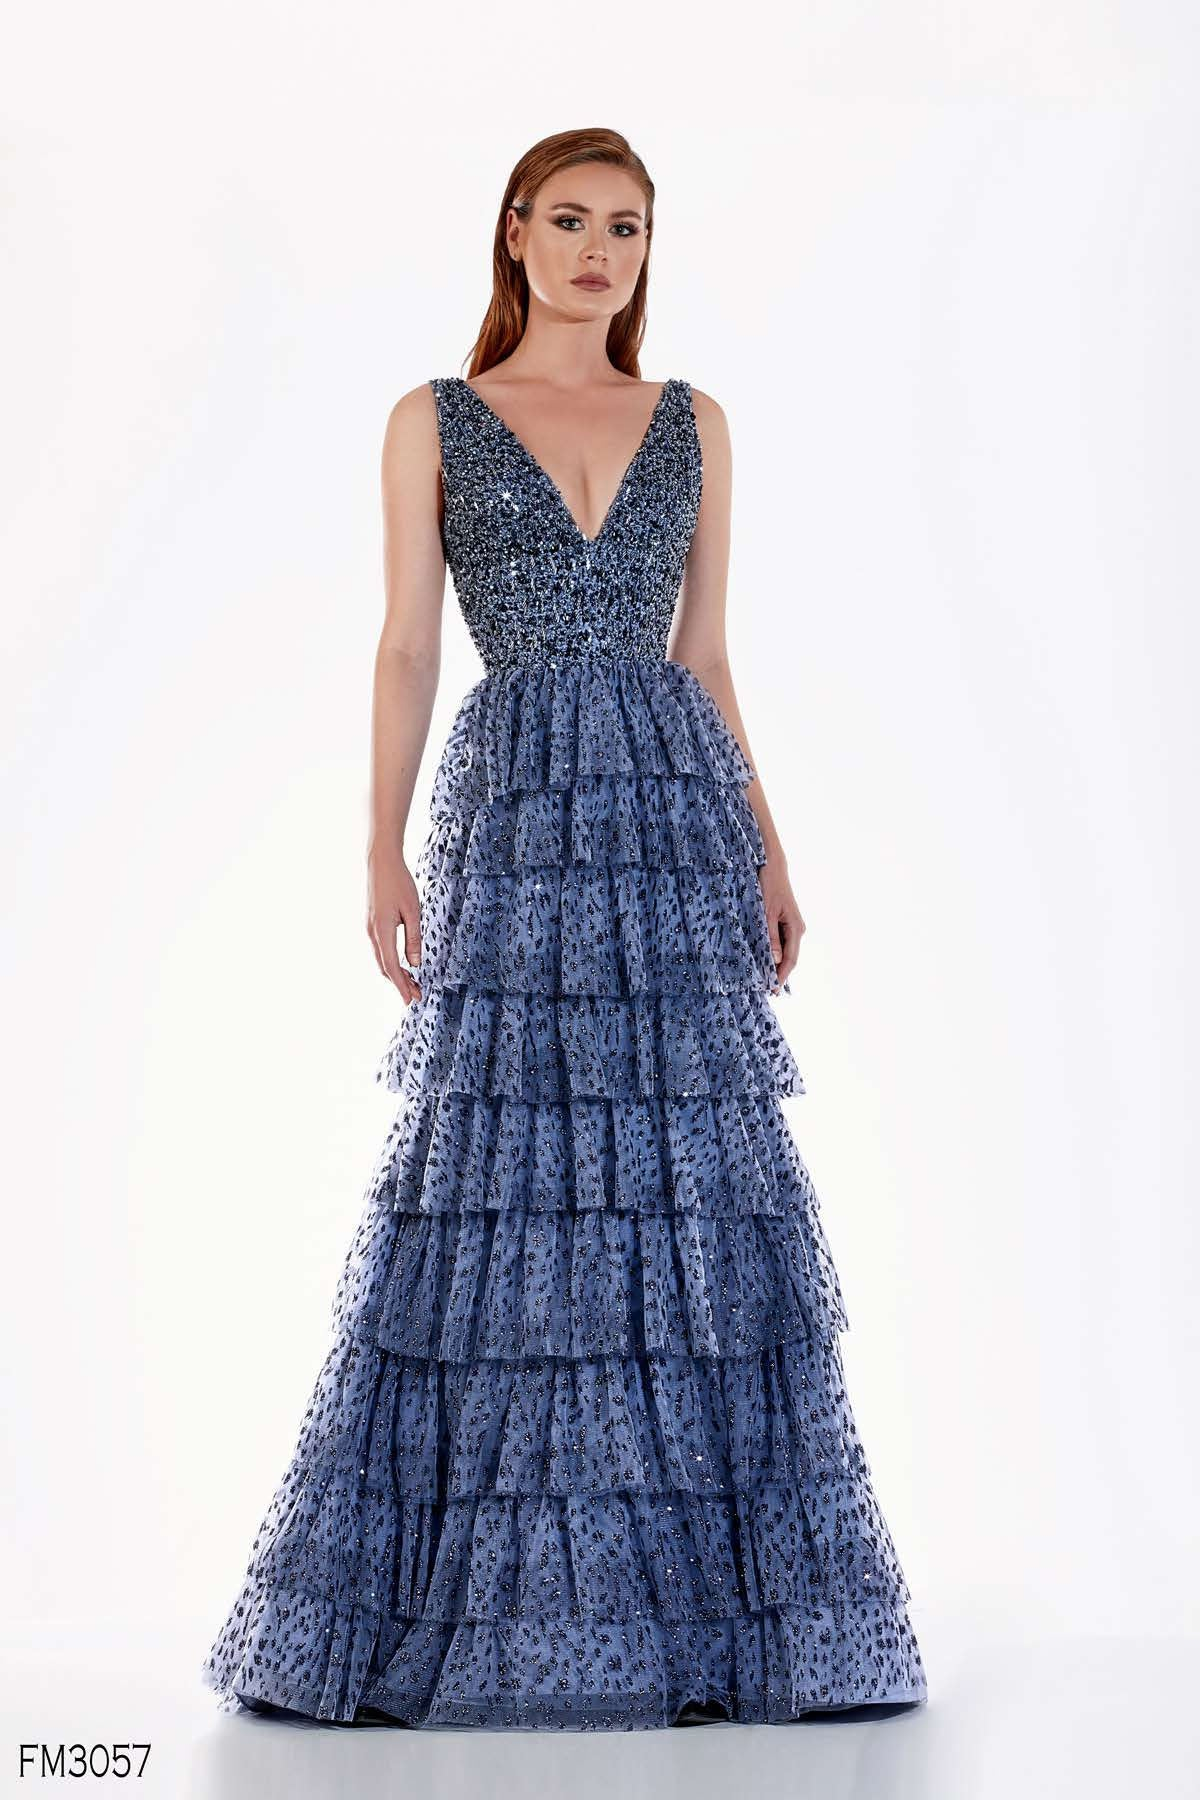 Azzure Couture FM3057 Dress - Elbisny